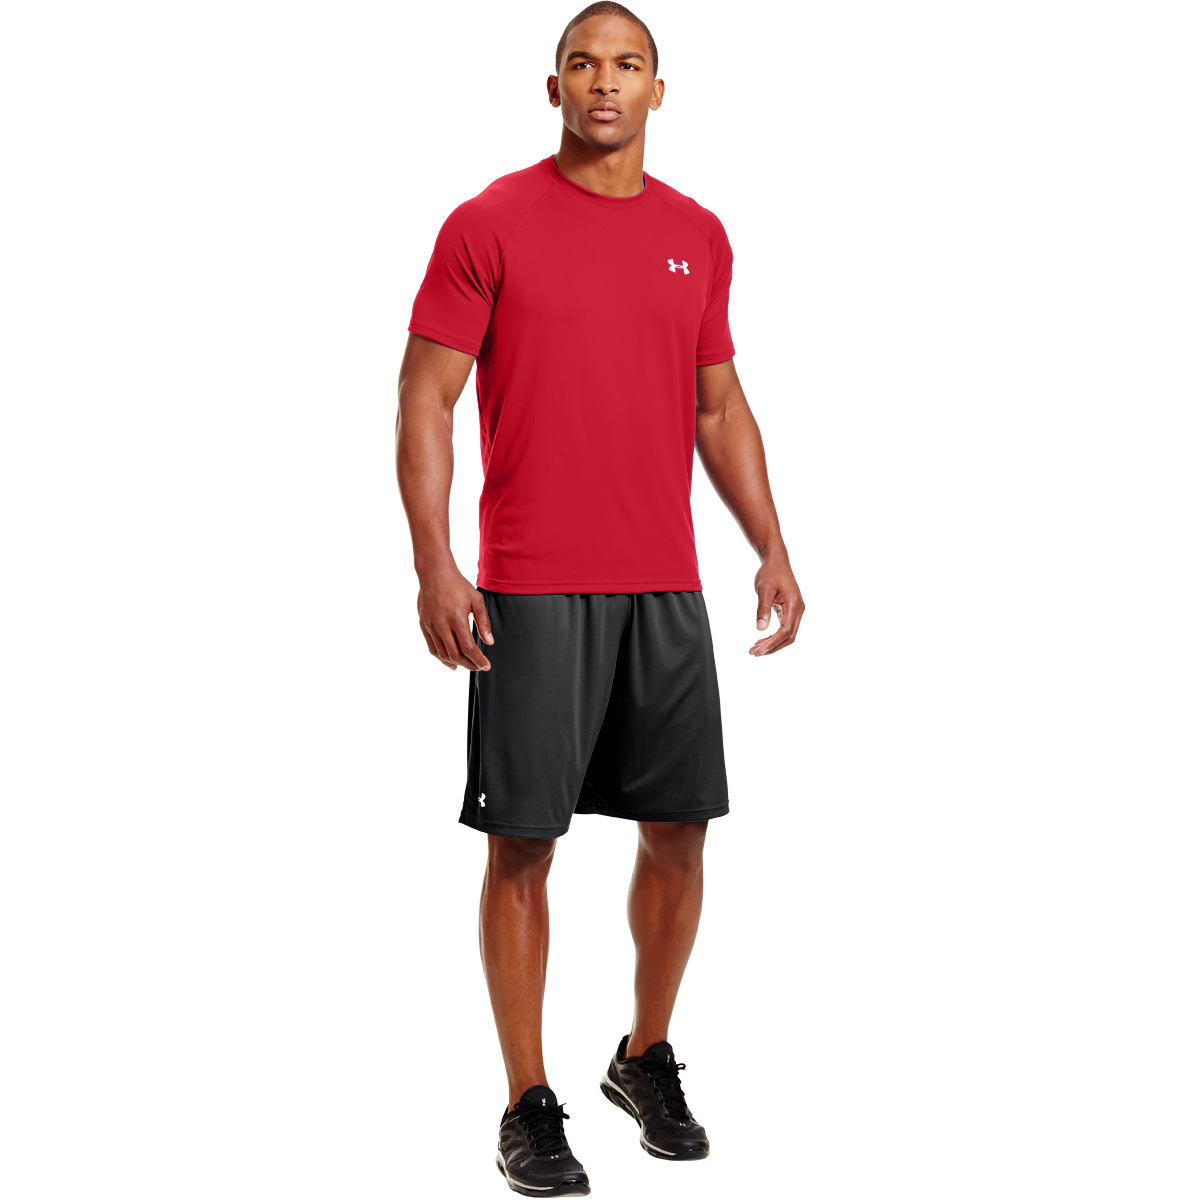 Under-Armour-Mens-UA-Tech-SS-T-Shirt-HeatGear-Training-31-OFF-RRP thumbnail 77